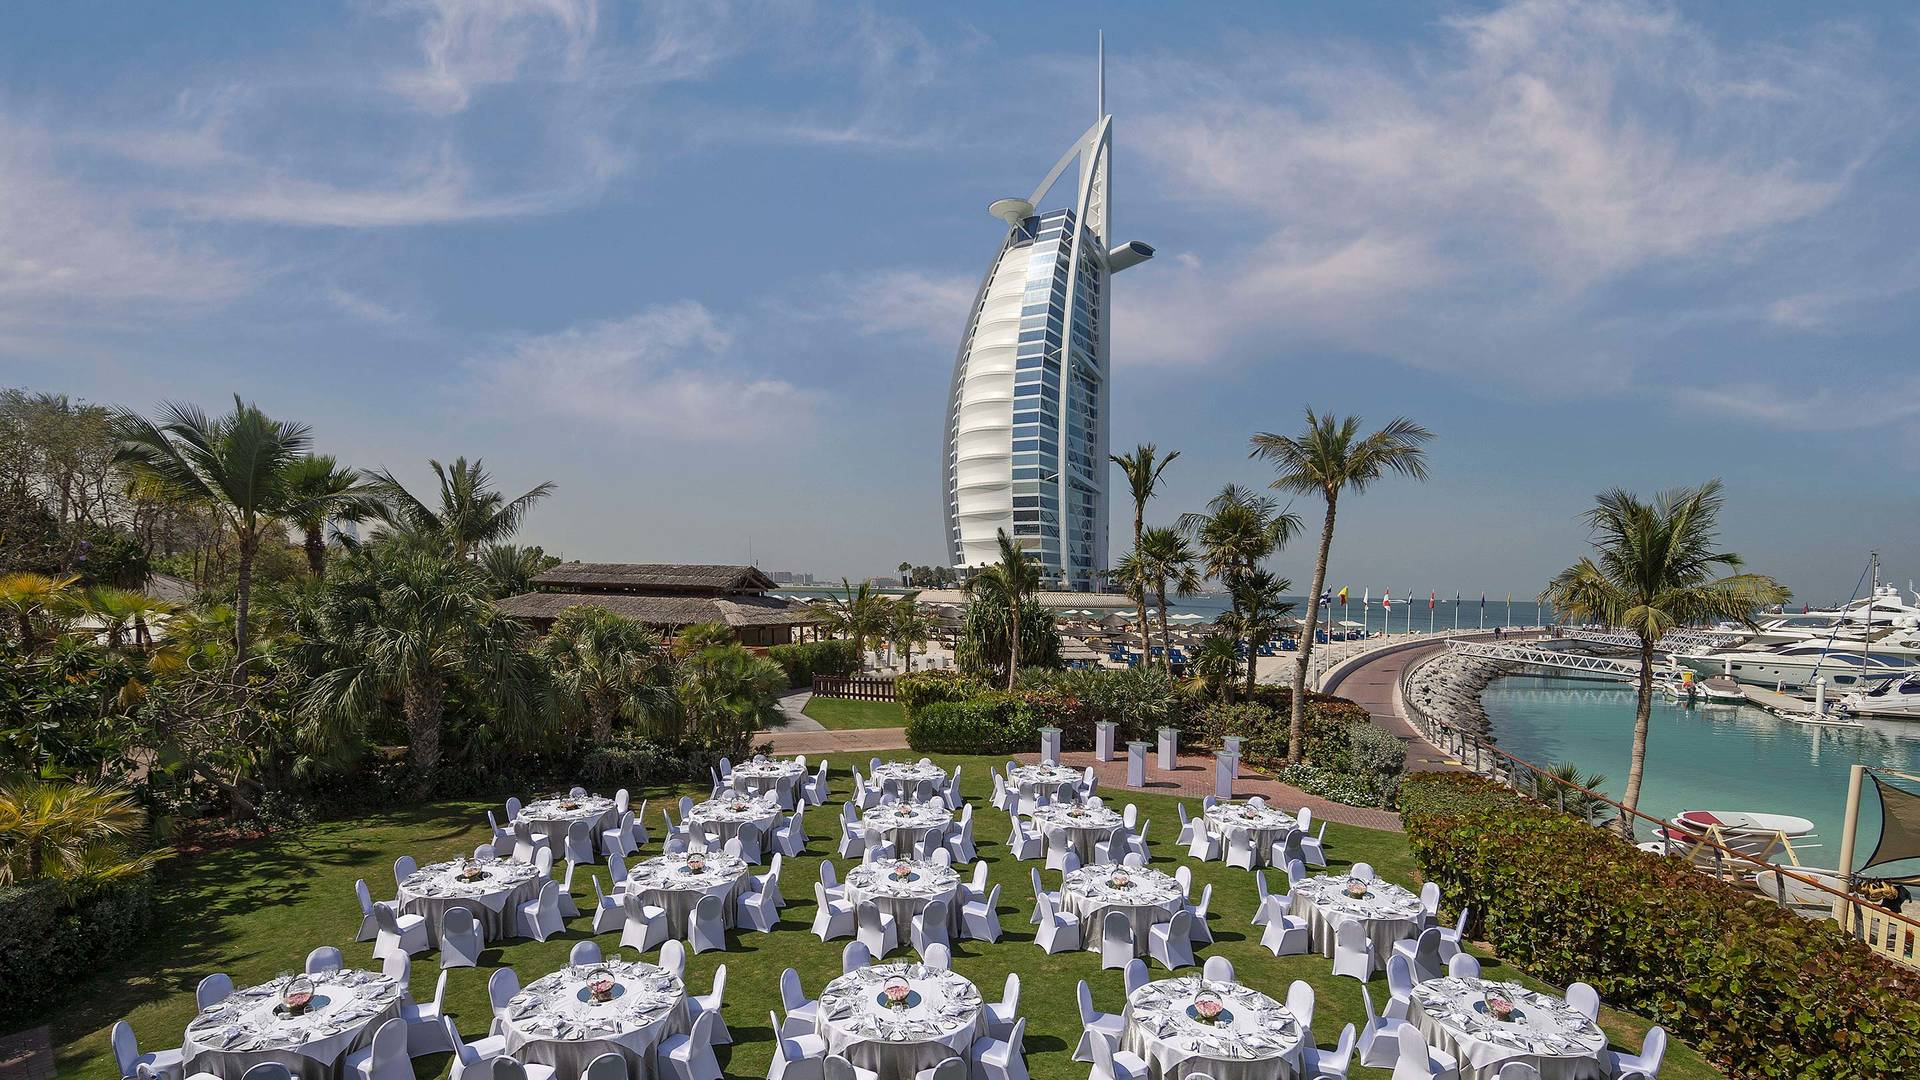 View of the sunset garden at Jumeirah Beach Hotel